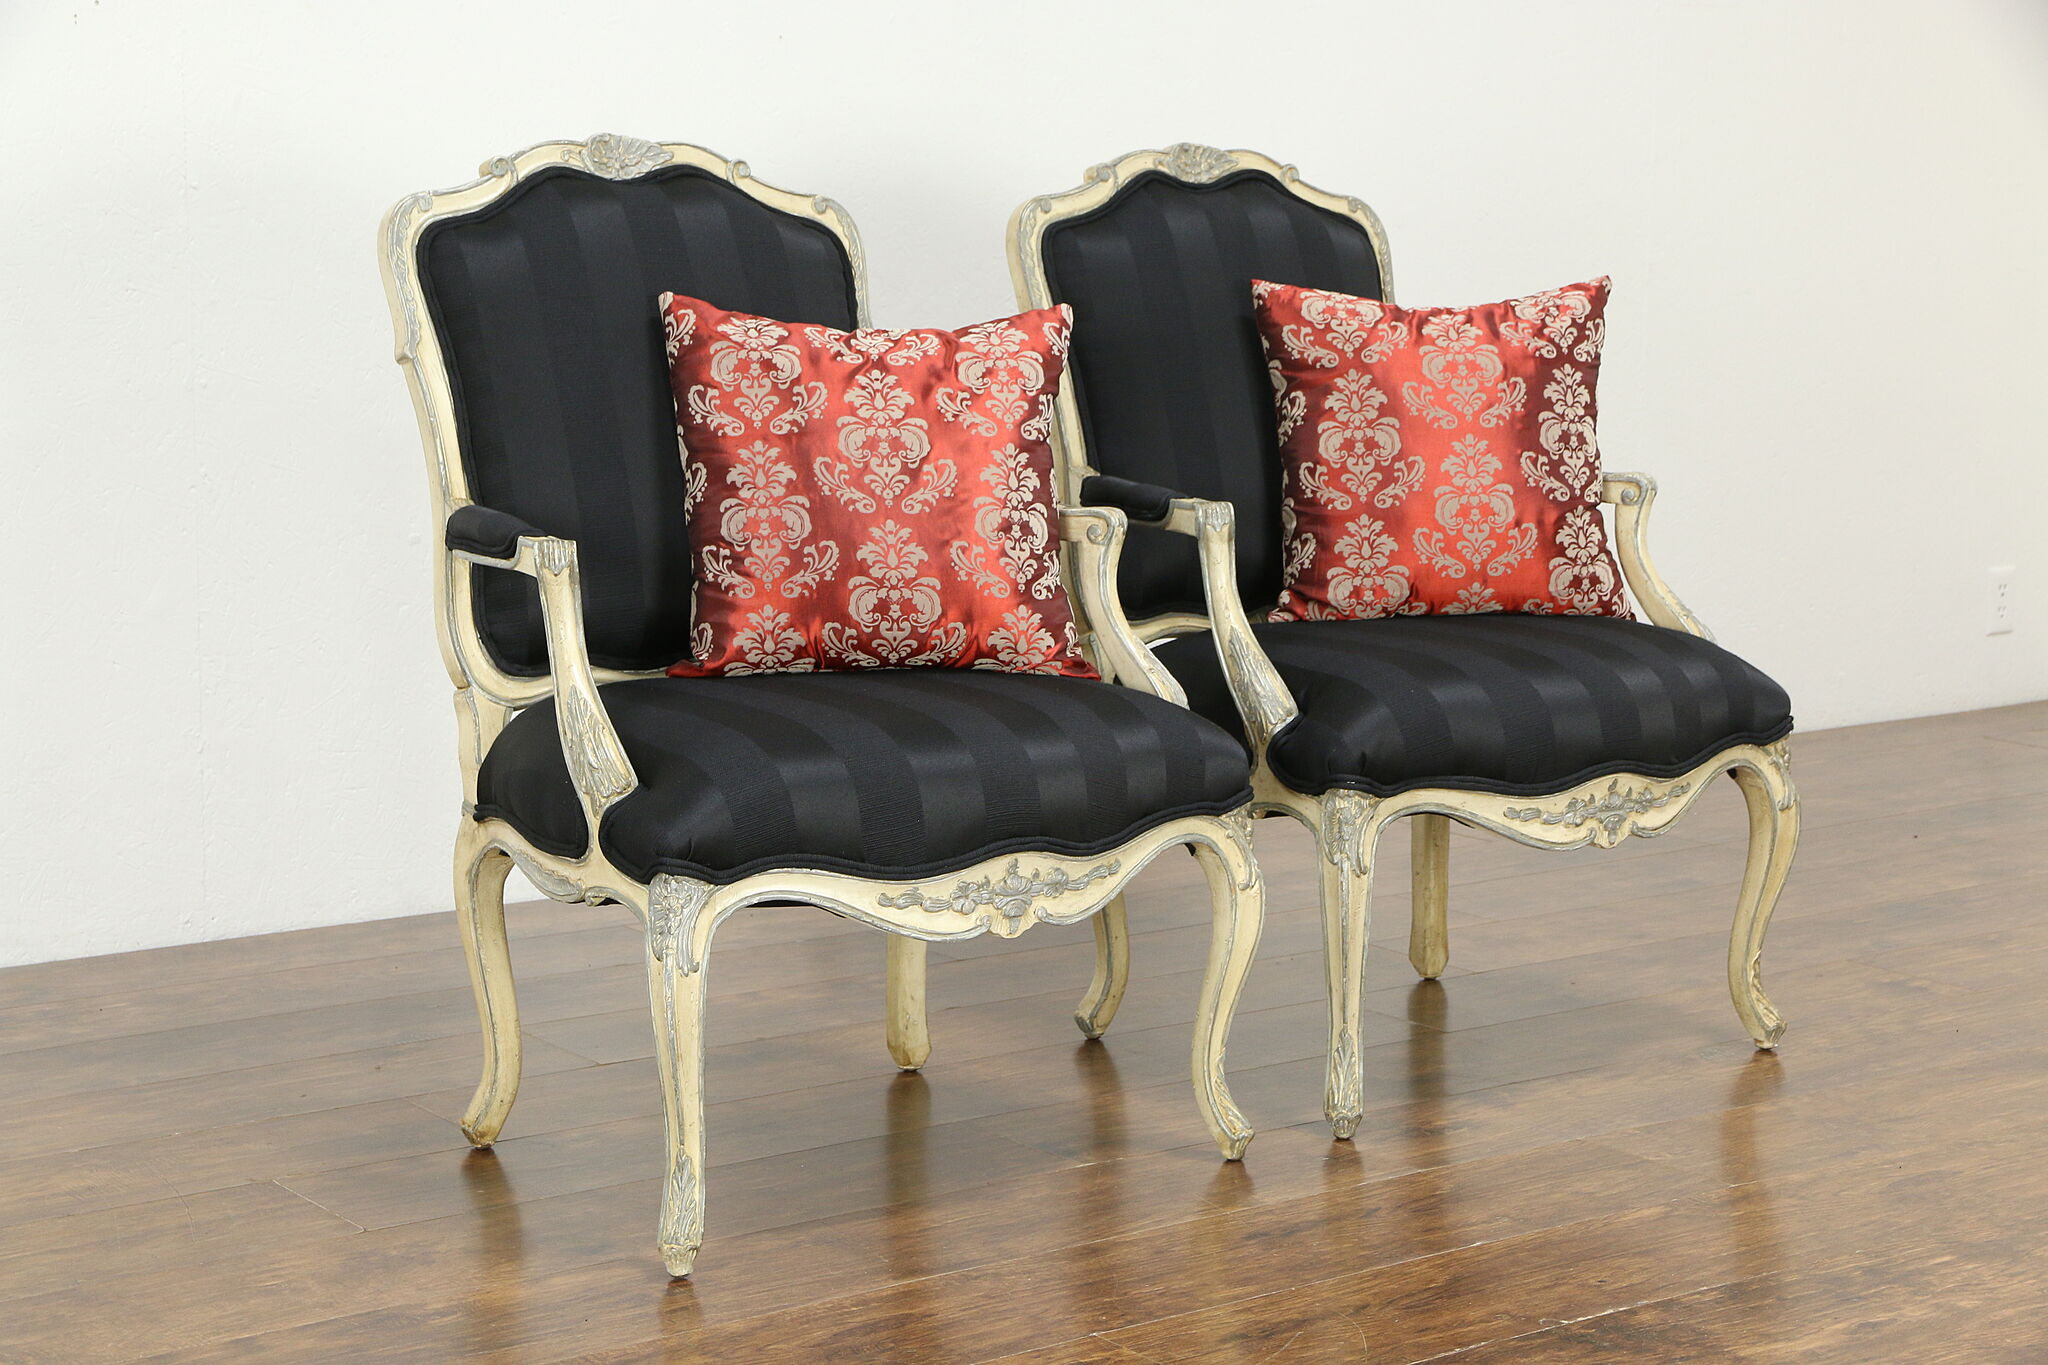 Sold Pair Of French Farmhouse Hand Painted Vintage Chairs New Upholstery 34445 Harp Gallery Antiques Furniture